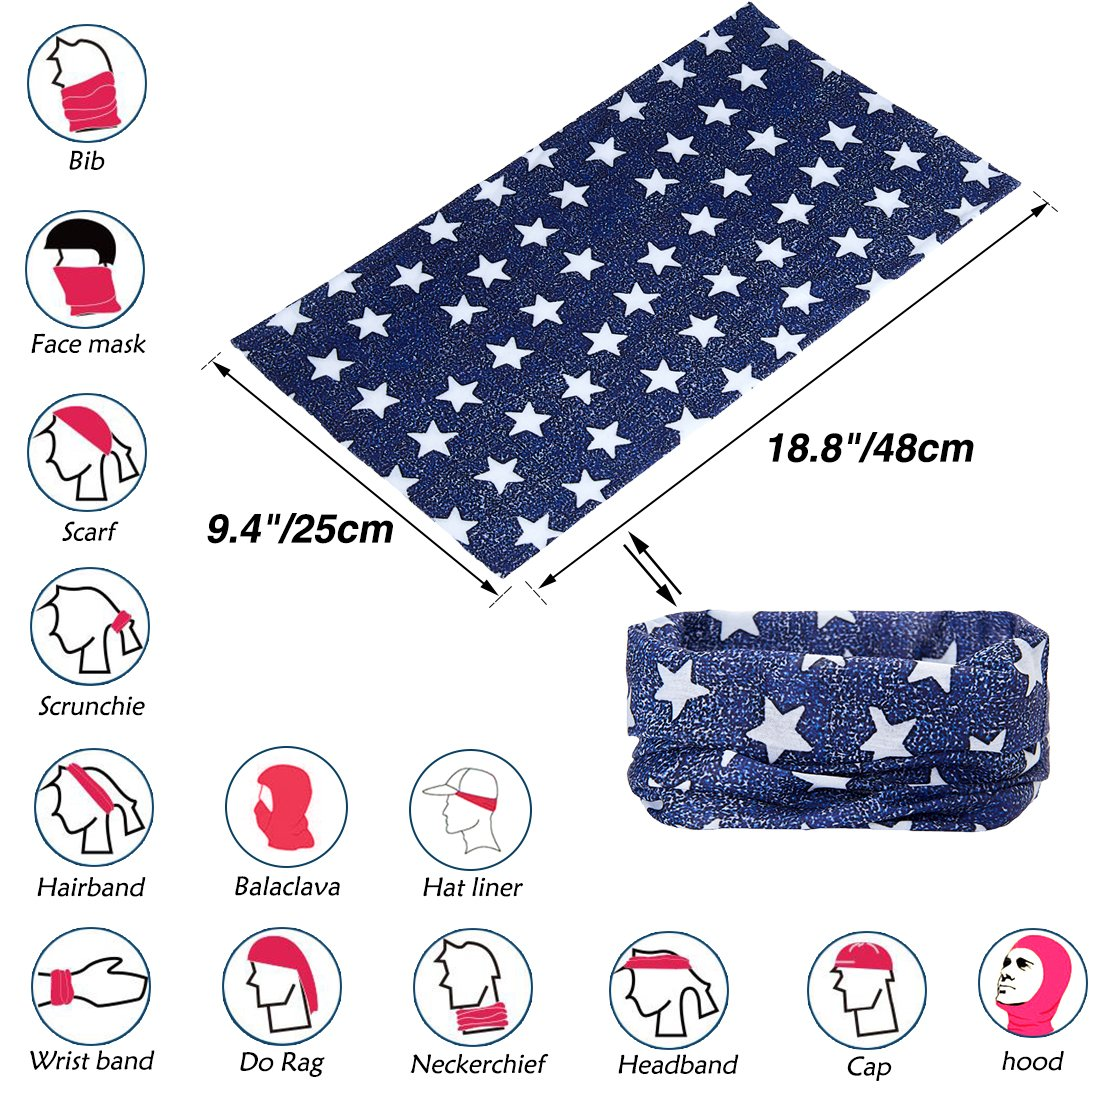 TUONROAD Printed Womens Plain Navy Blue White Stars Magic Neck Headband Scarf Mens Multifunctional Festival Fishing Stretchy Tube Face Sun Mask for Workout Running Skiing Riding Hunting Riding